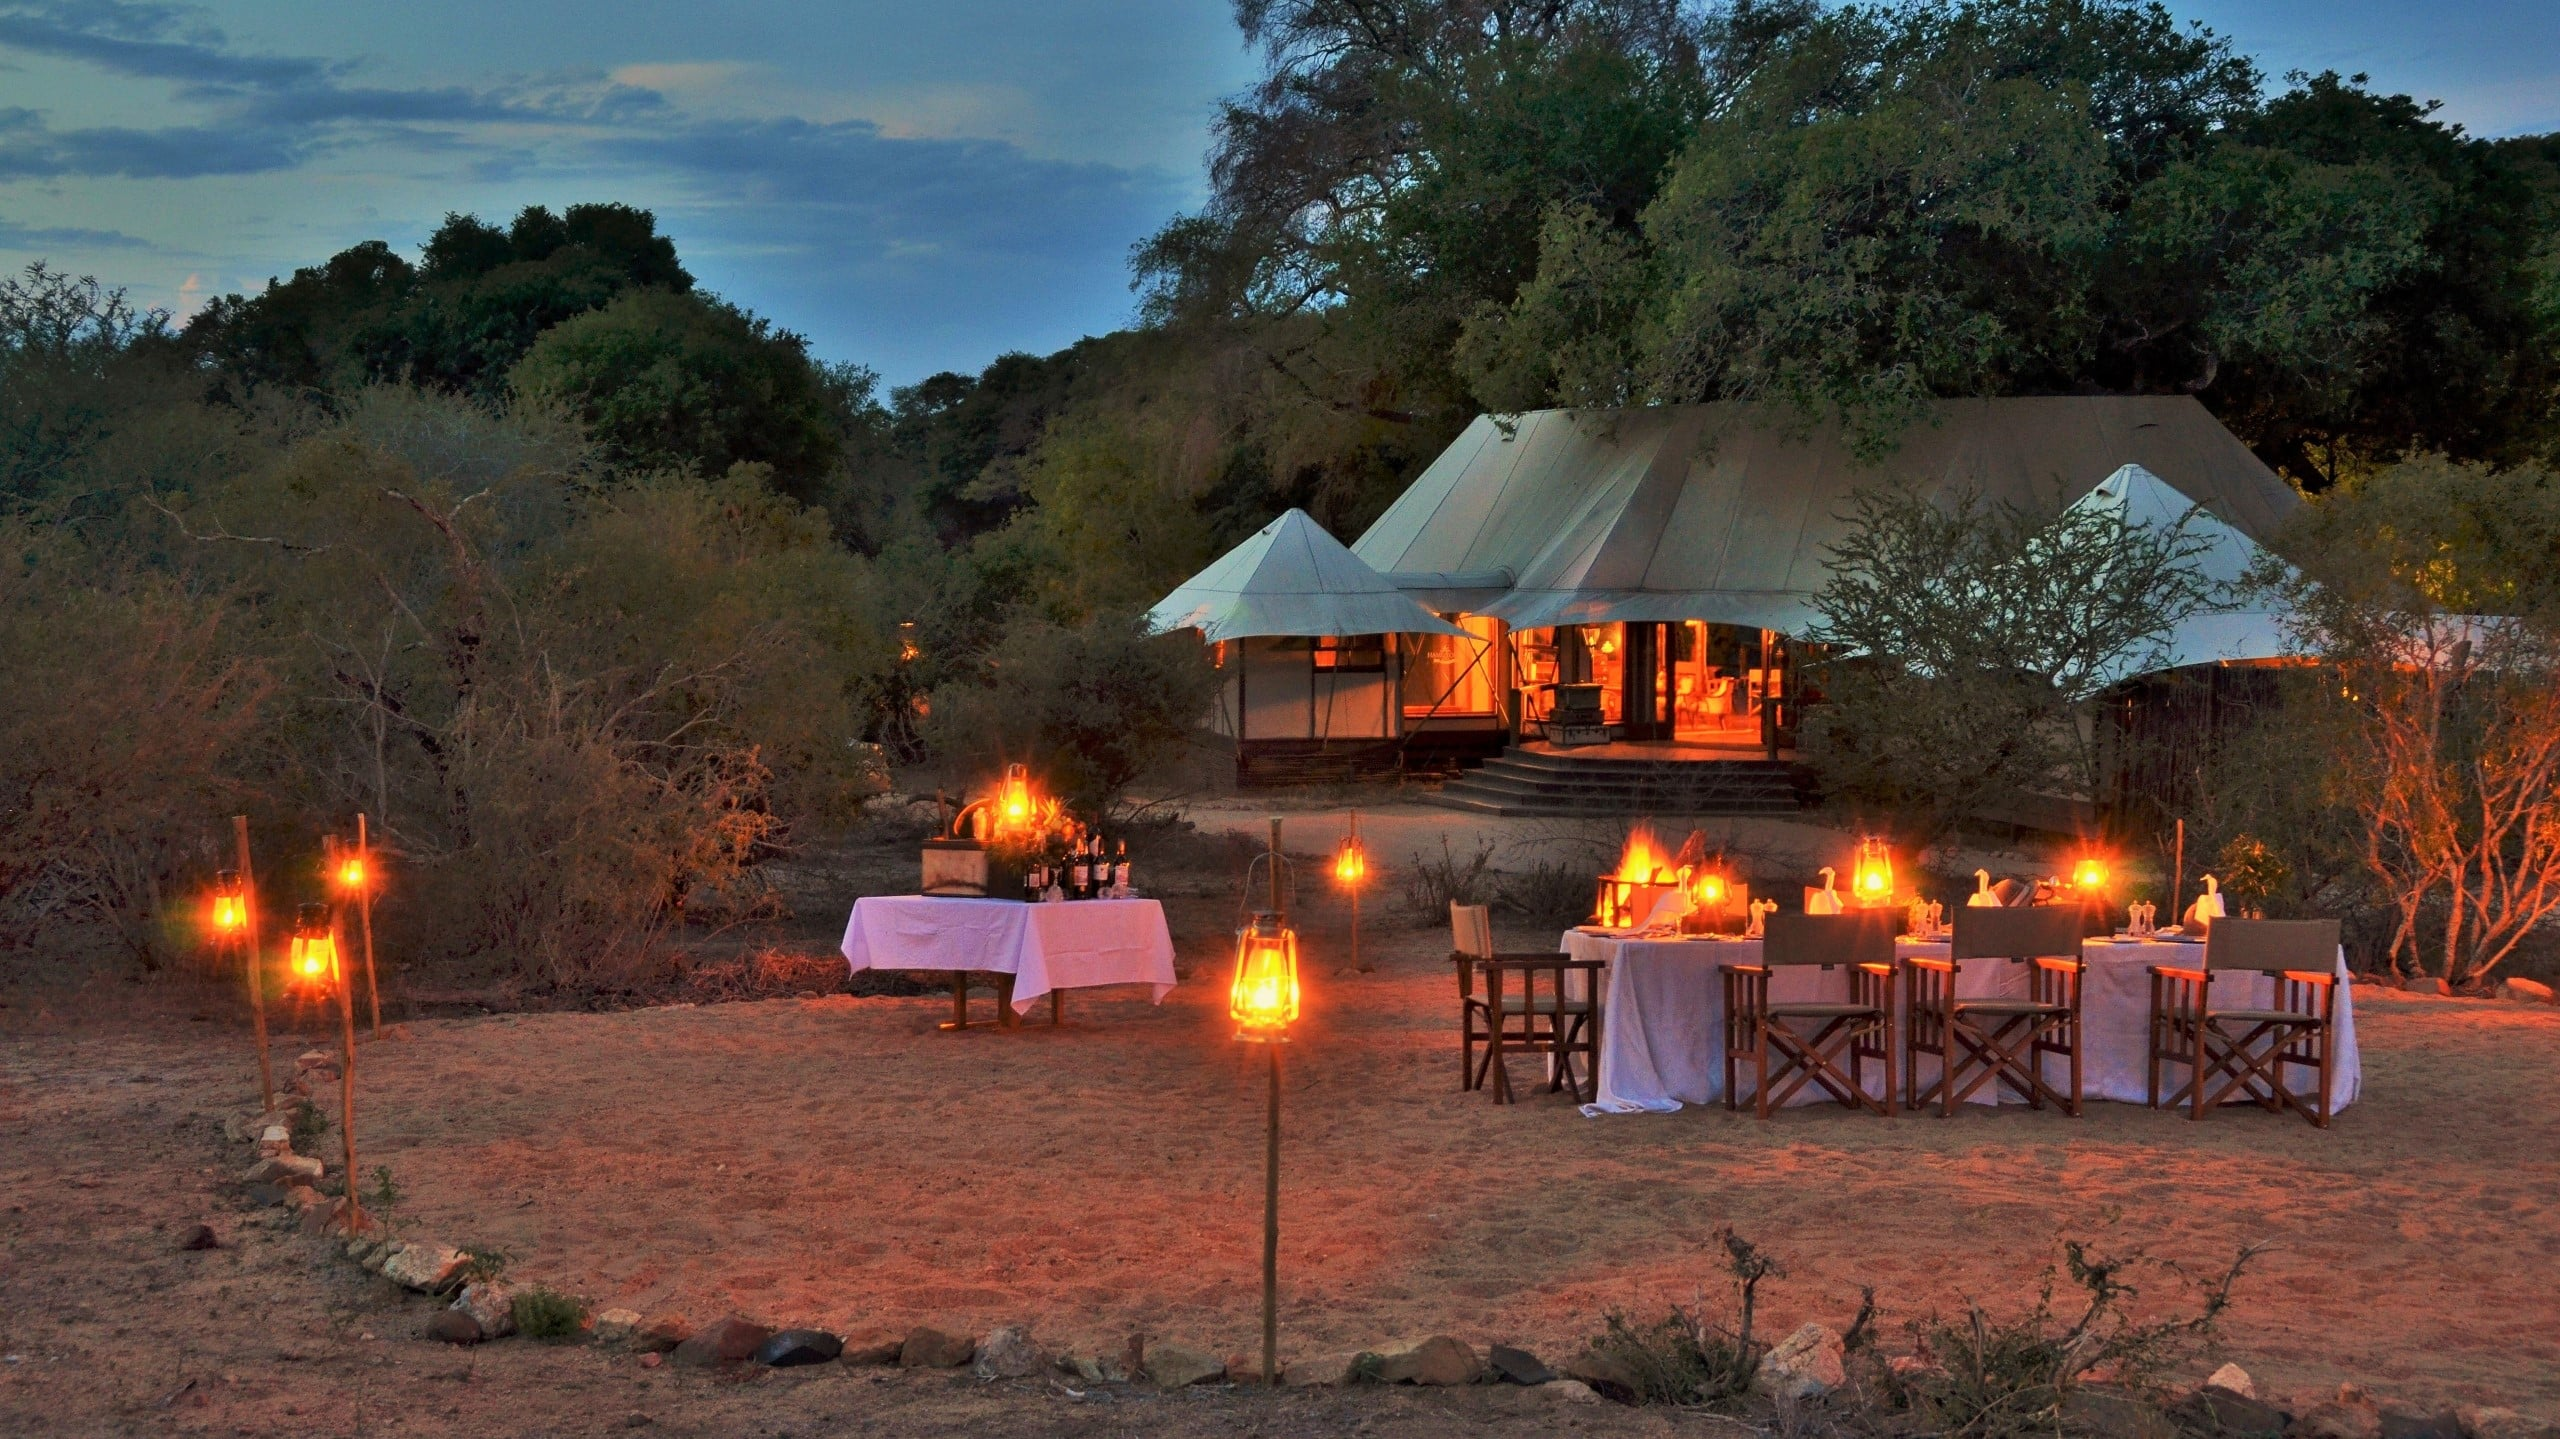 Bush dinner at Hamiltons Tented Camp